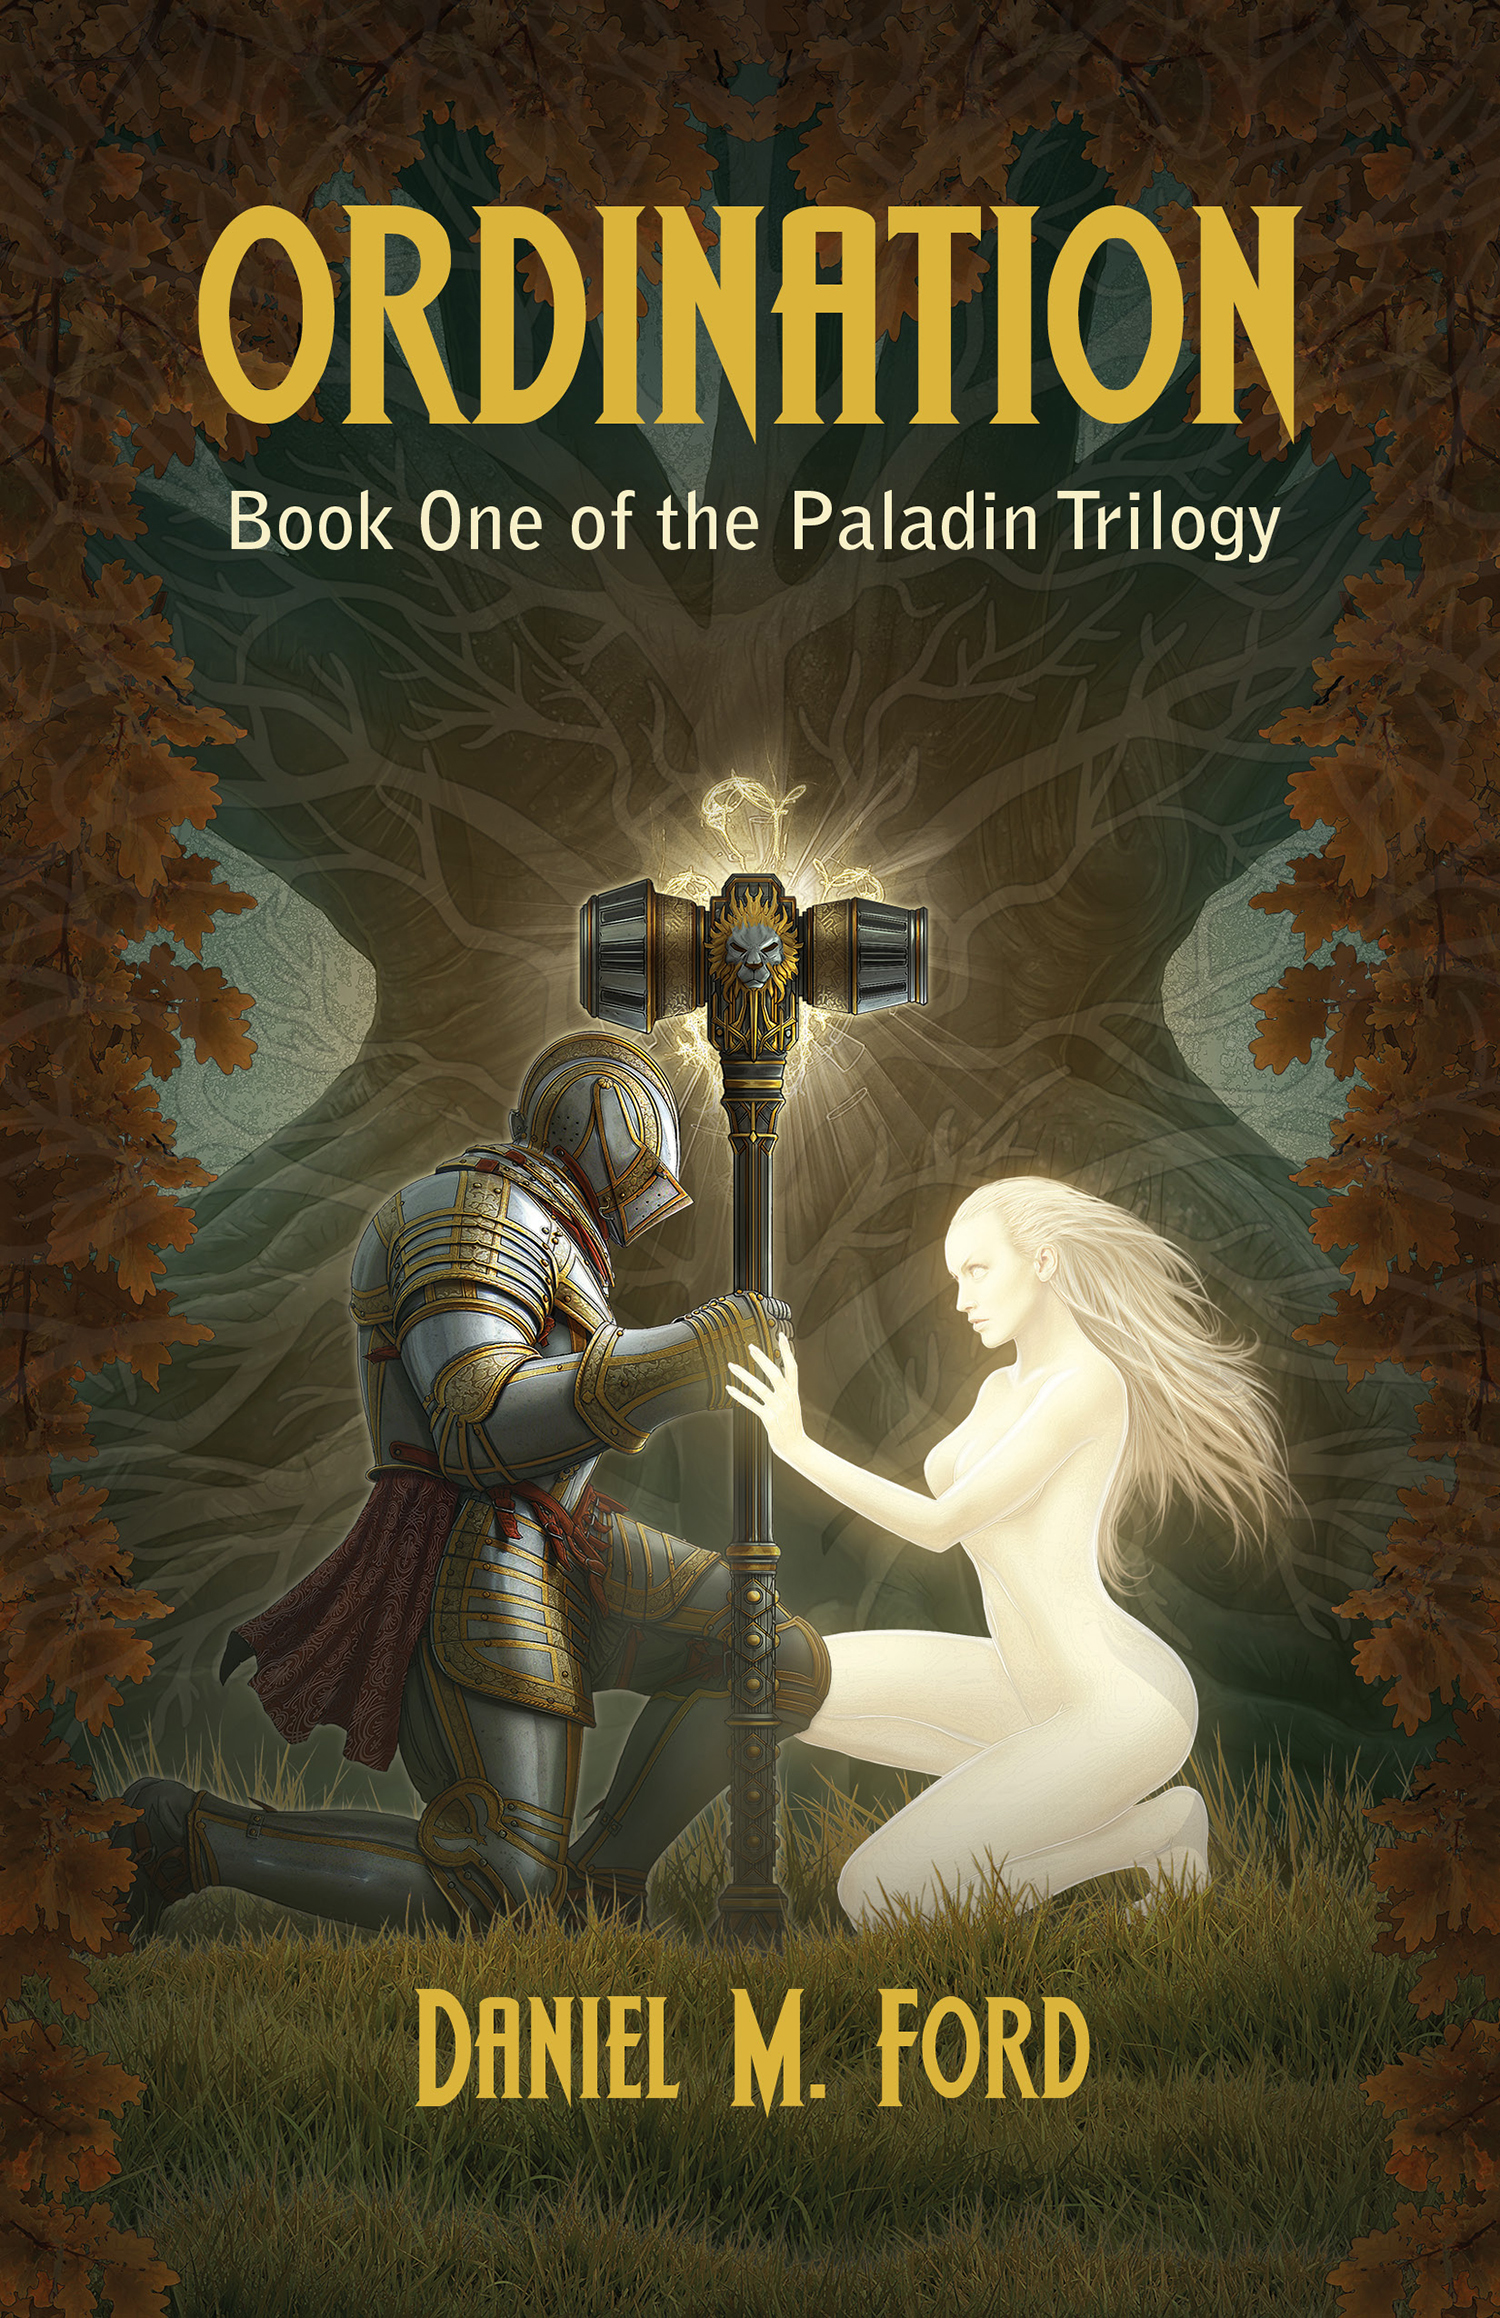 Cover artwork for the first book, Ordination.